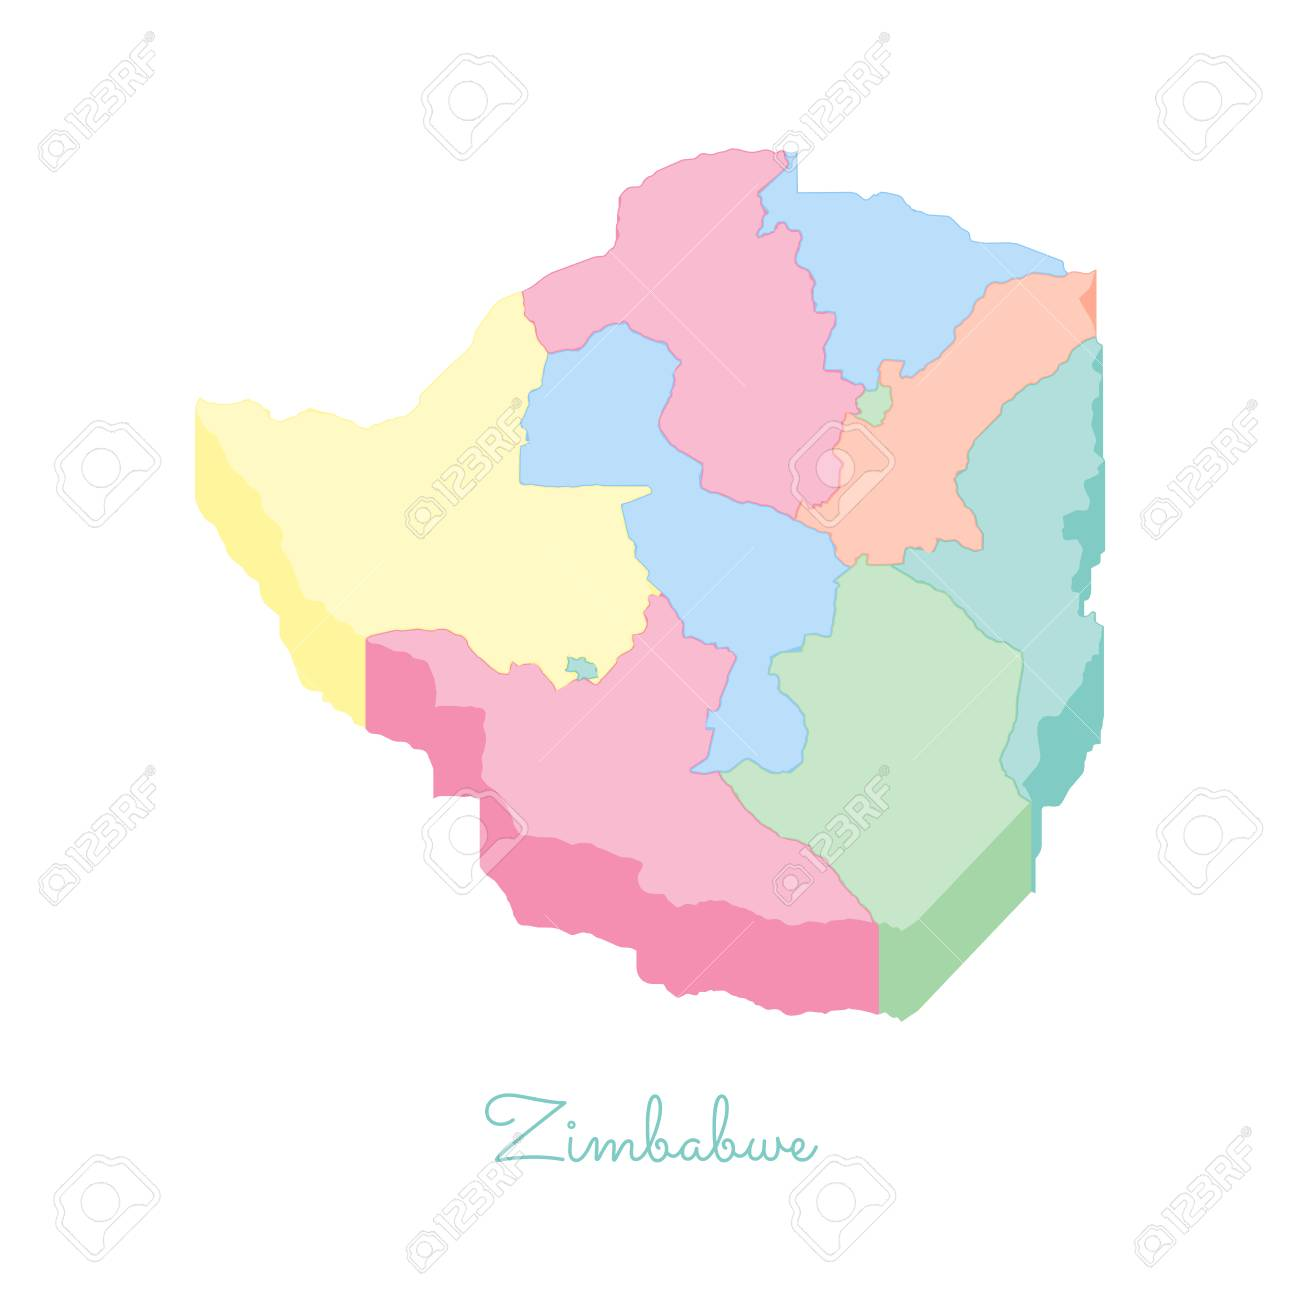 Zimbabwe region map: colorful isometric top view. Detailed map.. on malaysia regions map, finland regions map, afghanistan regions map, moldova regions map, nicaragua regions map, el salvador regions map, zimbabwe resources, uk regions map, cameroon regions map, united states of america regions map, africa regions map, hungary regions map, bahrain regions map, uganda regions map, mozambique regions map, armenia regions map, latvia regions map, venezuela regions map, guinea regions map, central african republic regions map,